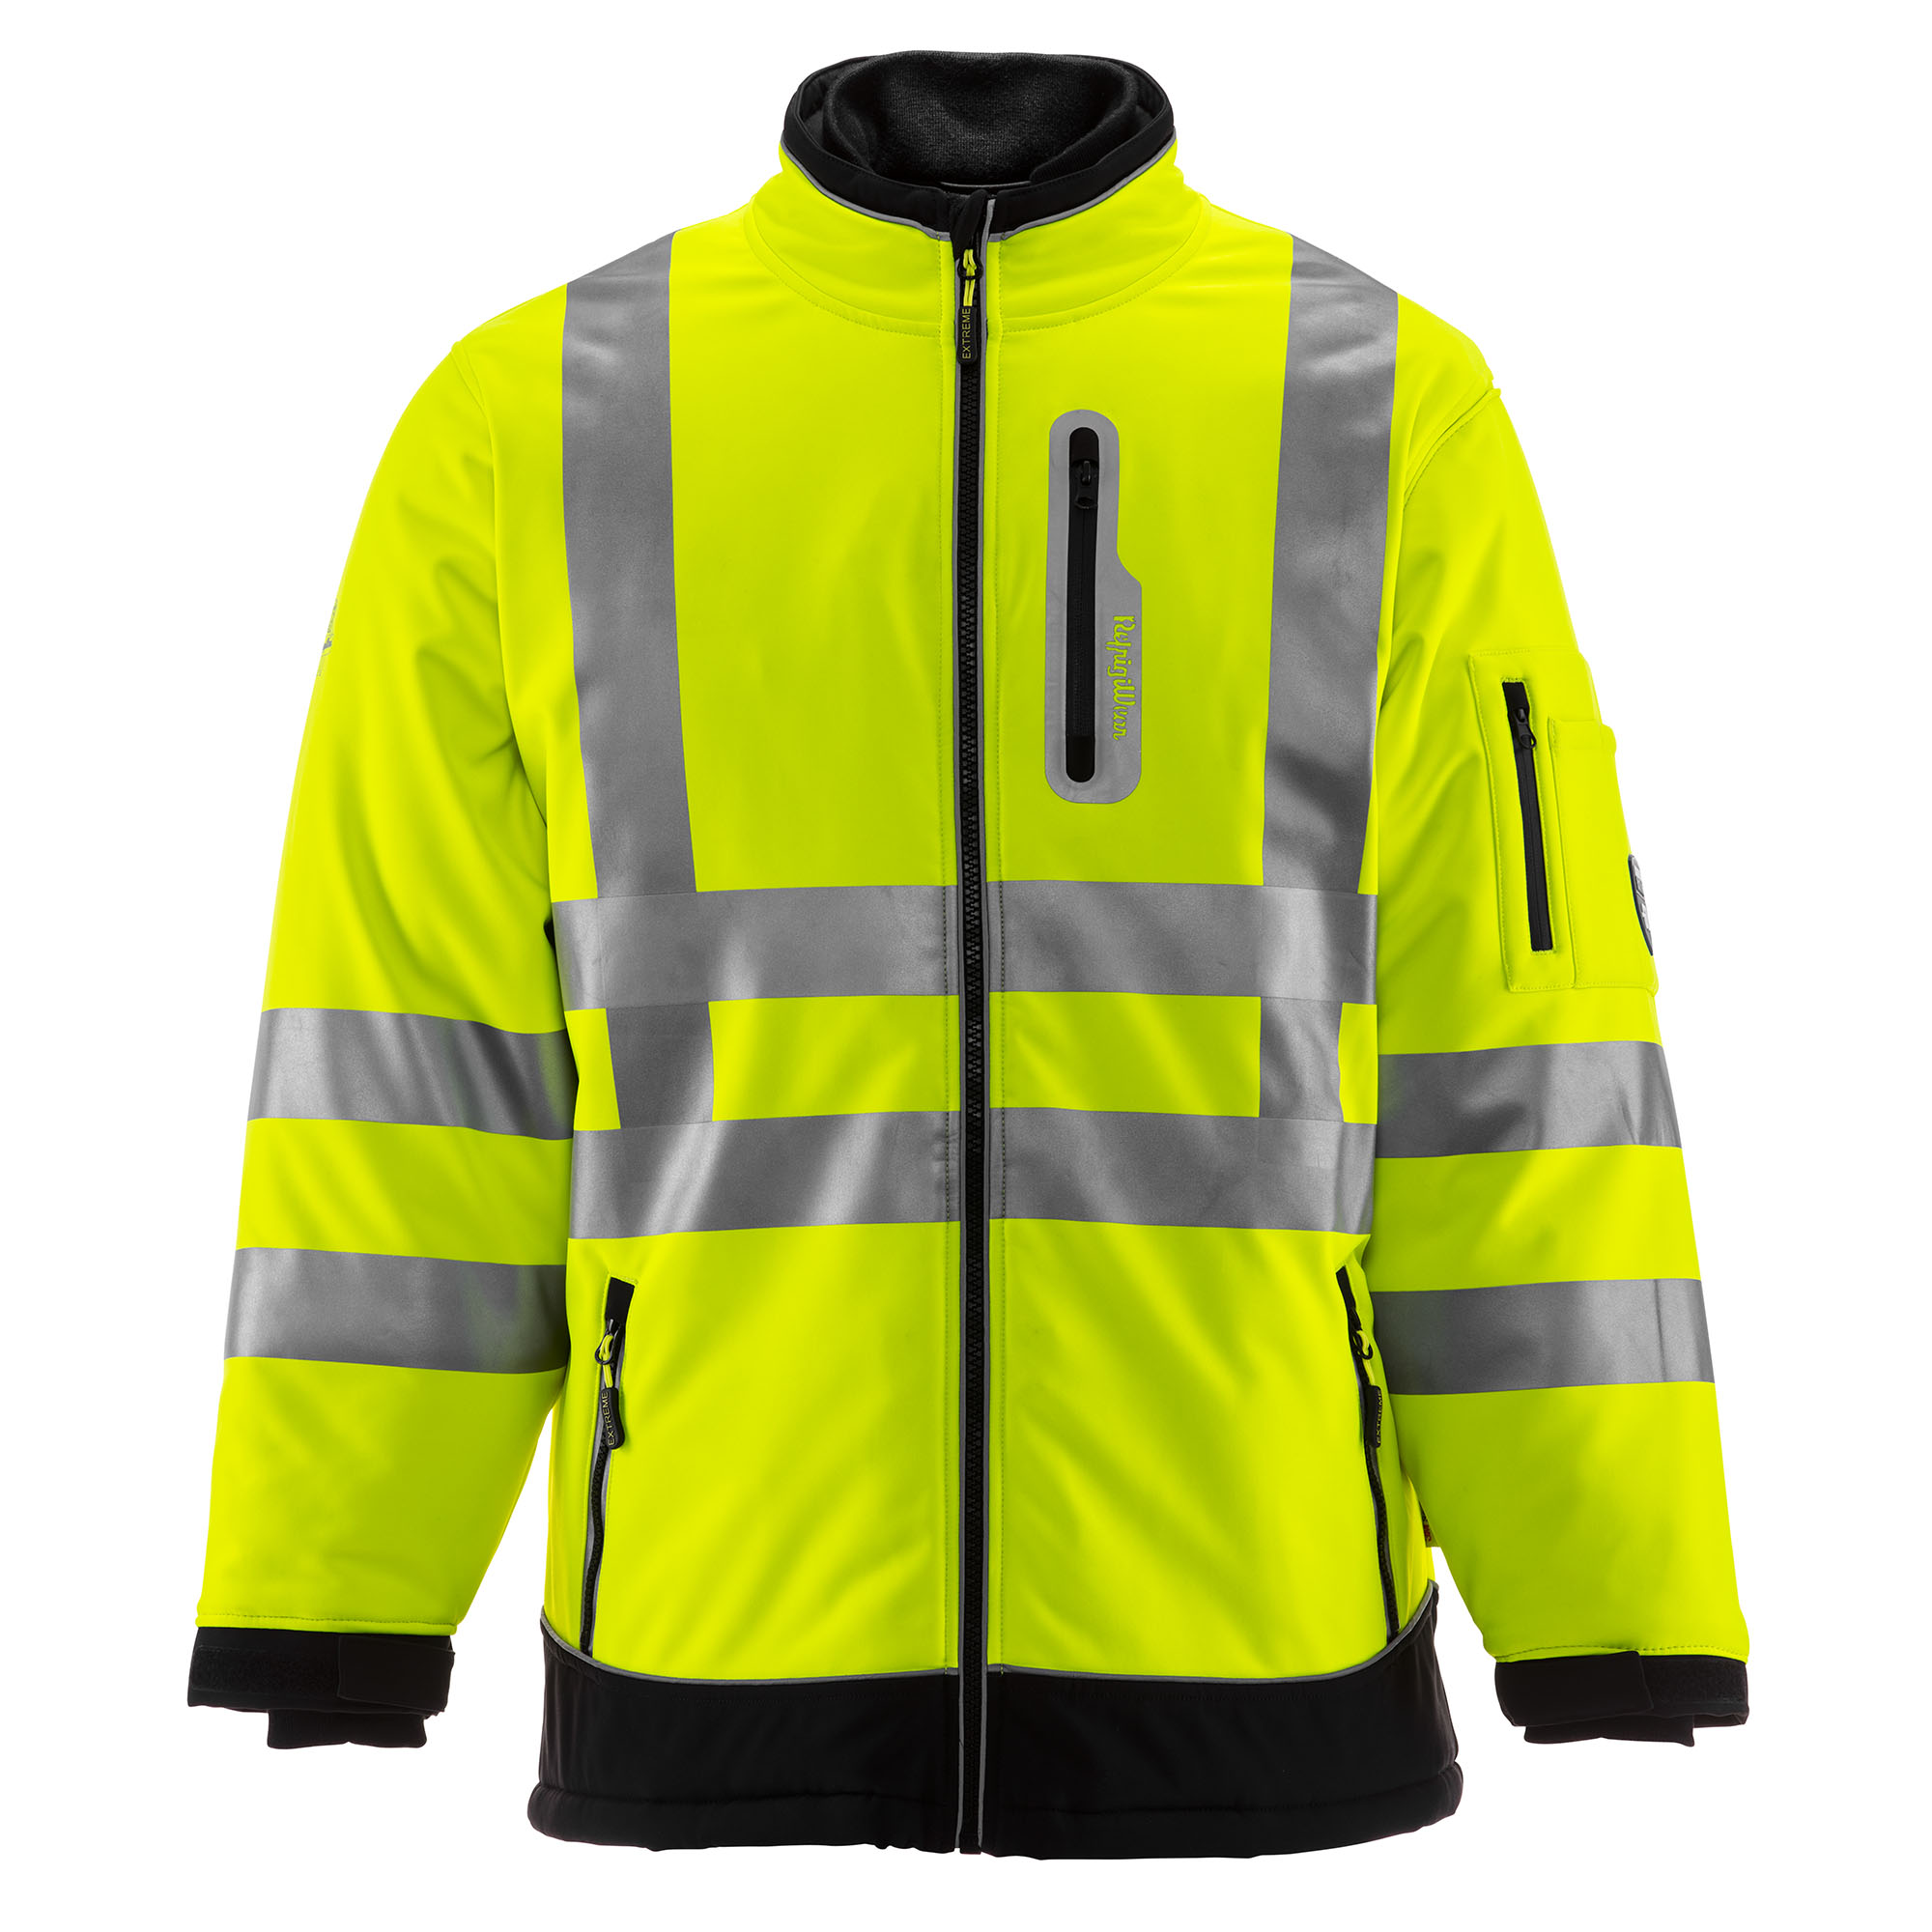 85c3ea9cc60b Details about RefrigiWear Men s Insulated HiVis Extreme Softshell Jacket  with Reflective Tape